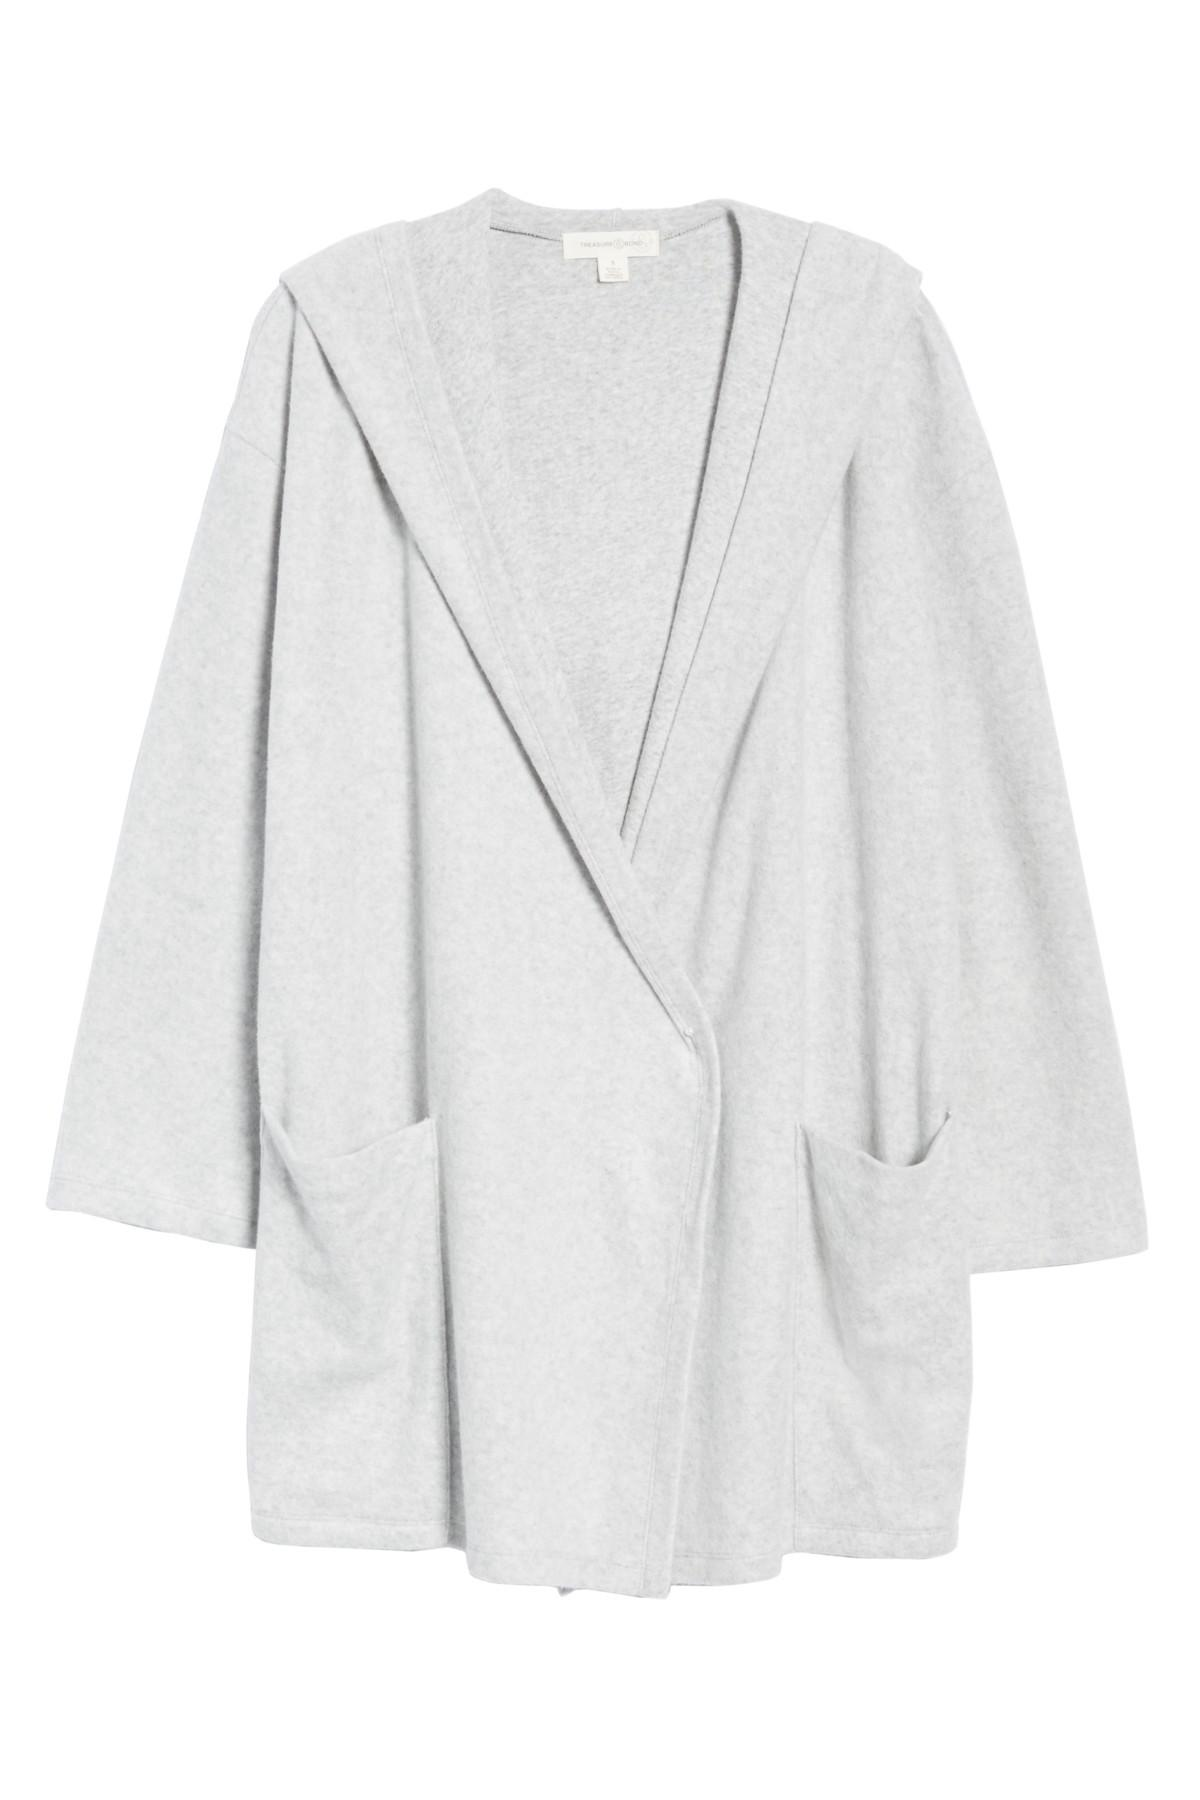 Lyst - Treasure   Bond Hooded Open Front Cardigan in Gray 03b9e8815